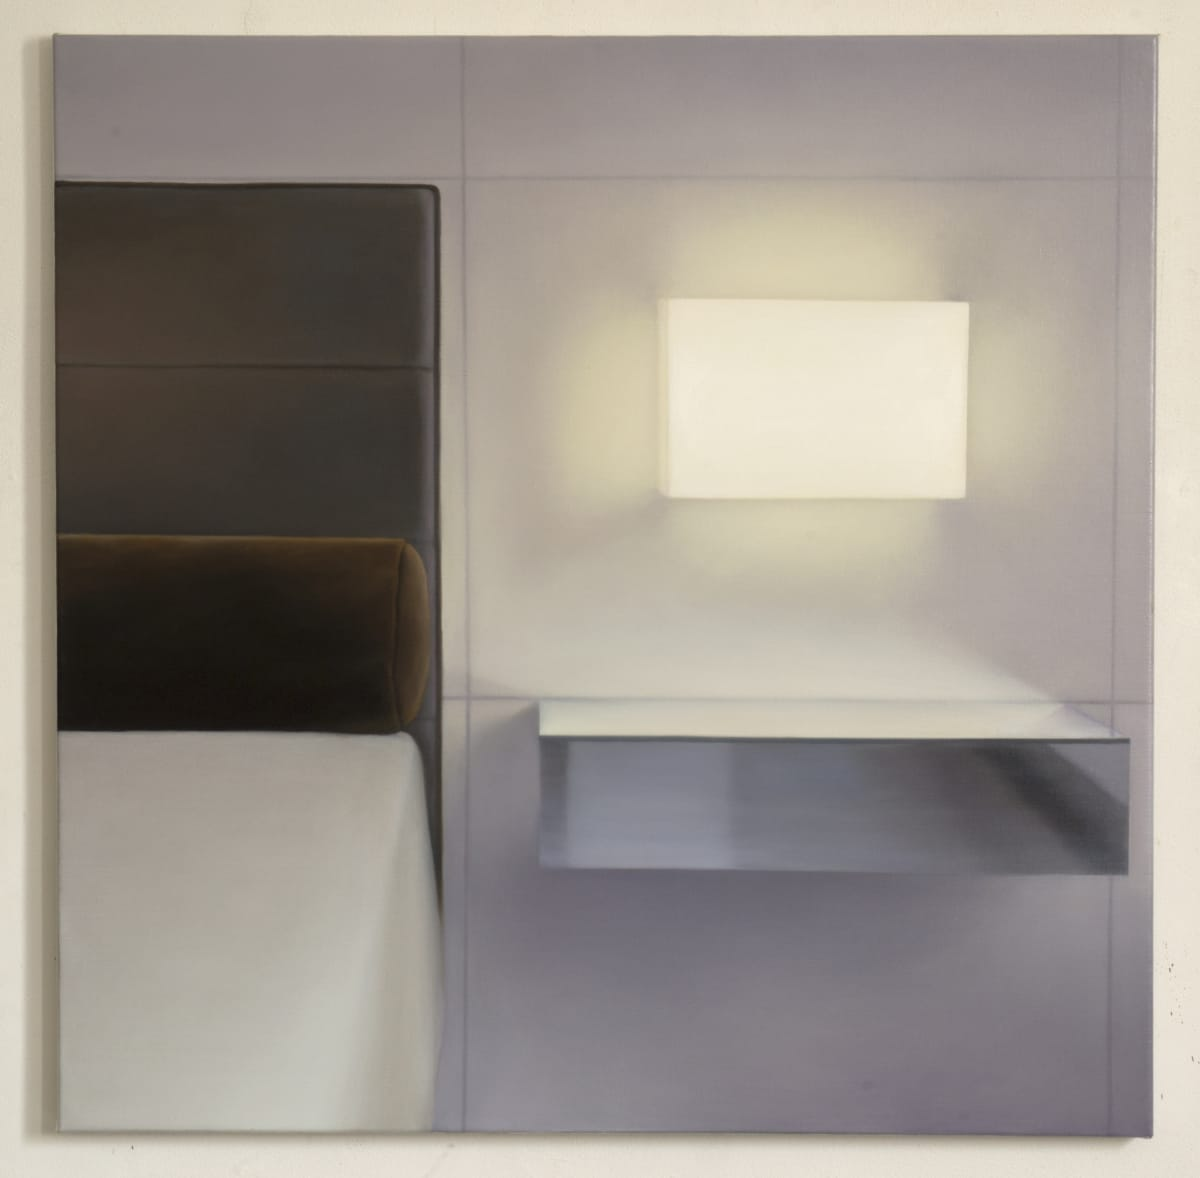 ARNOUT KILLIAN Bedside Lamp, 2018 oil on canvas 95 x 95 cm signed and dated